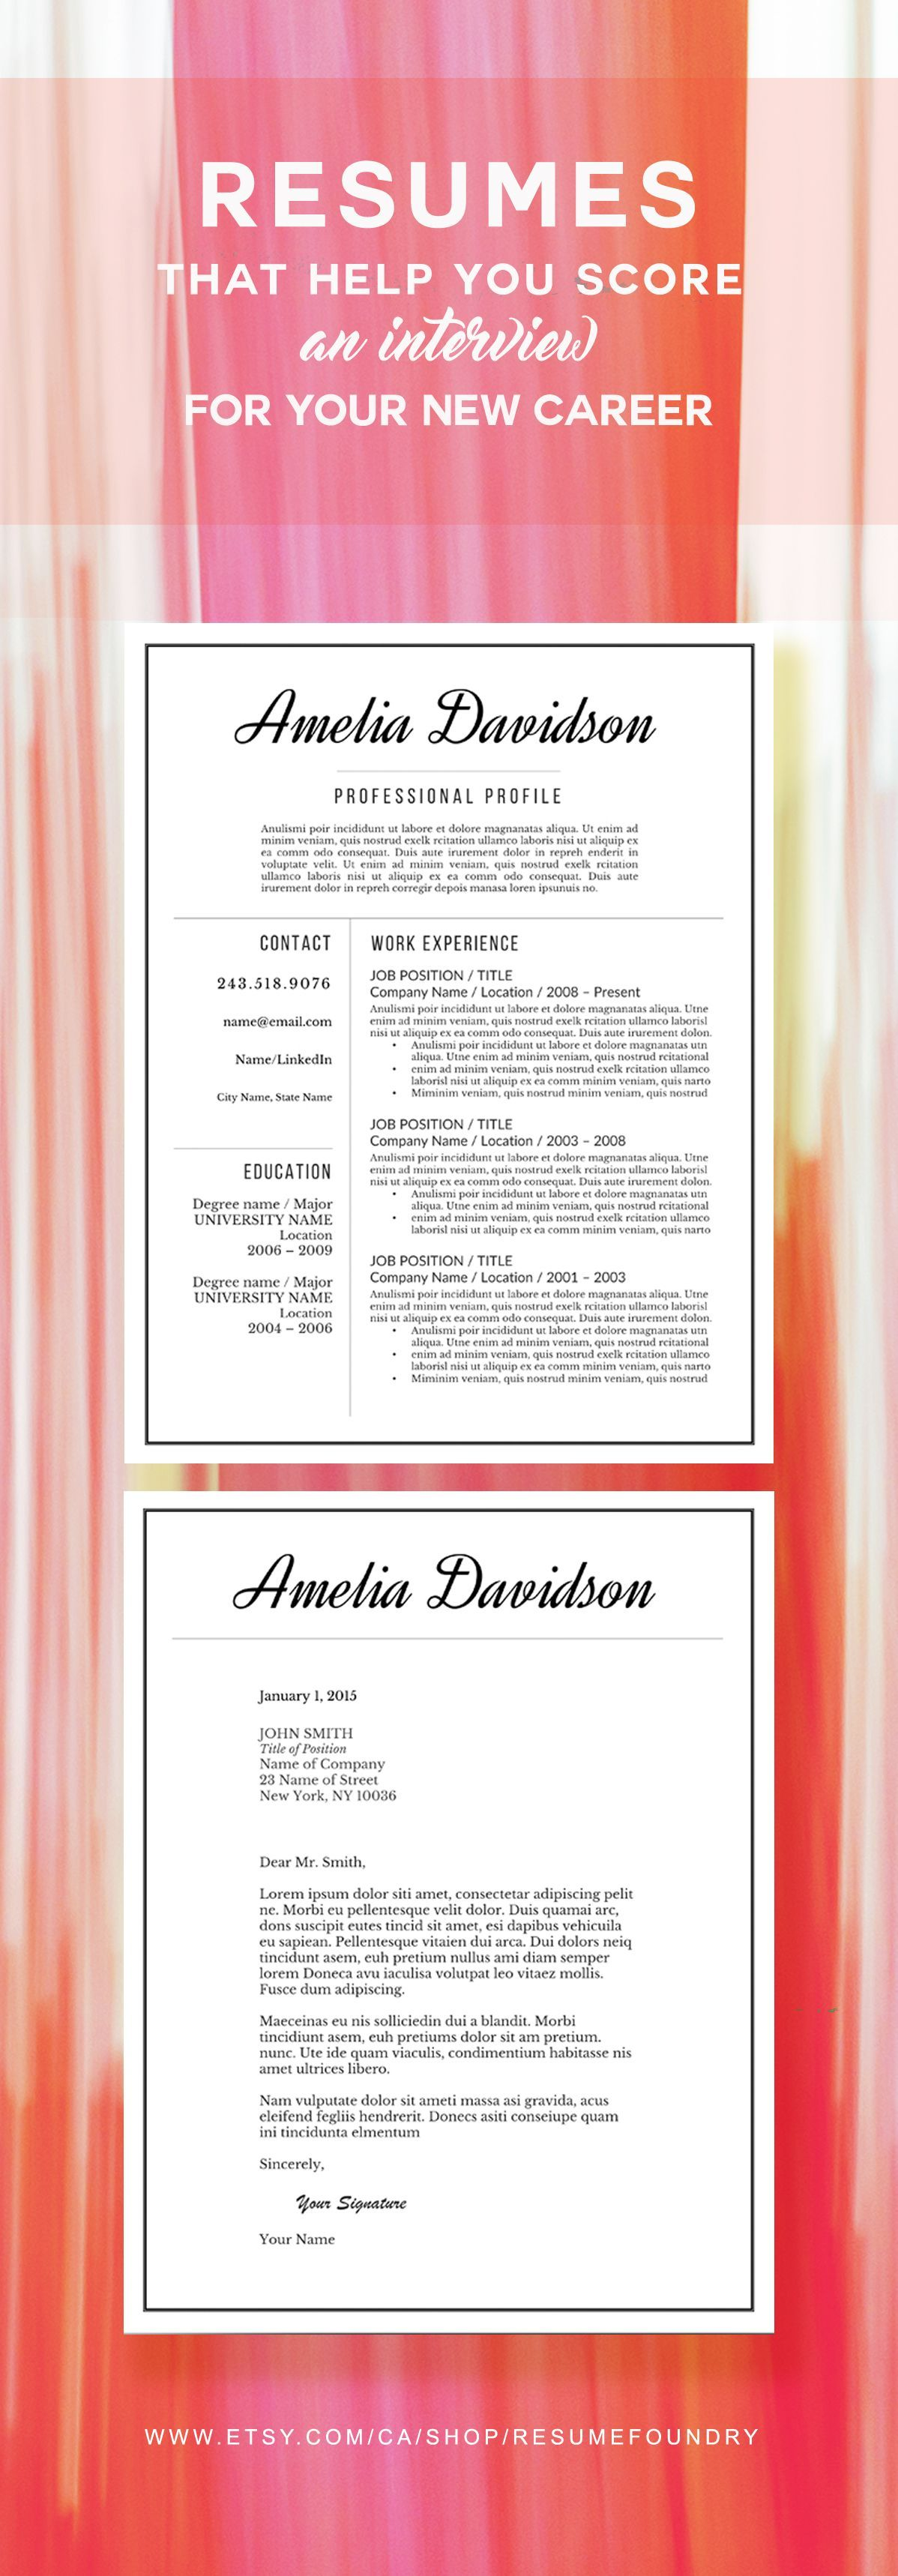 Elegant Resume Template For Use With Microsoft Word  Career